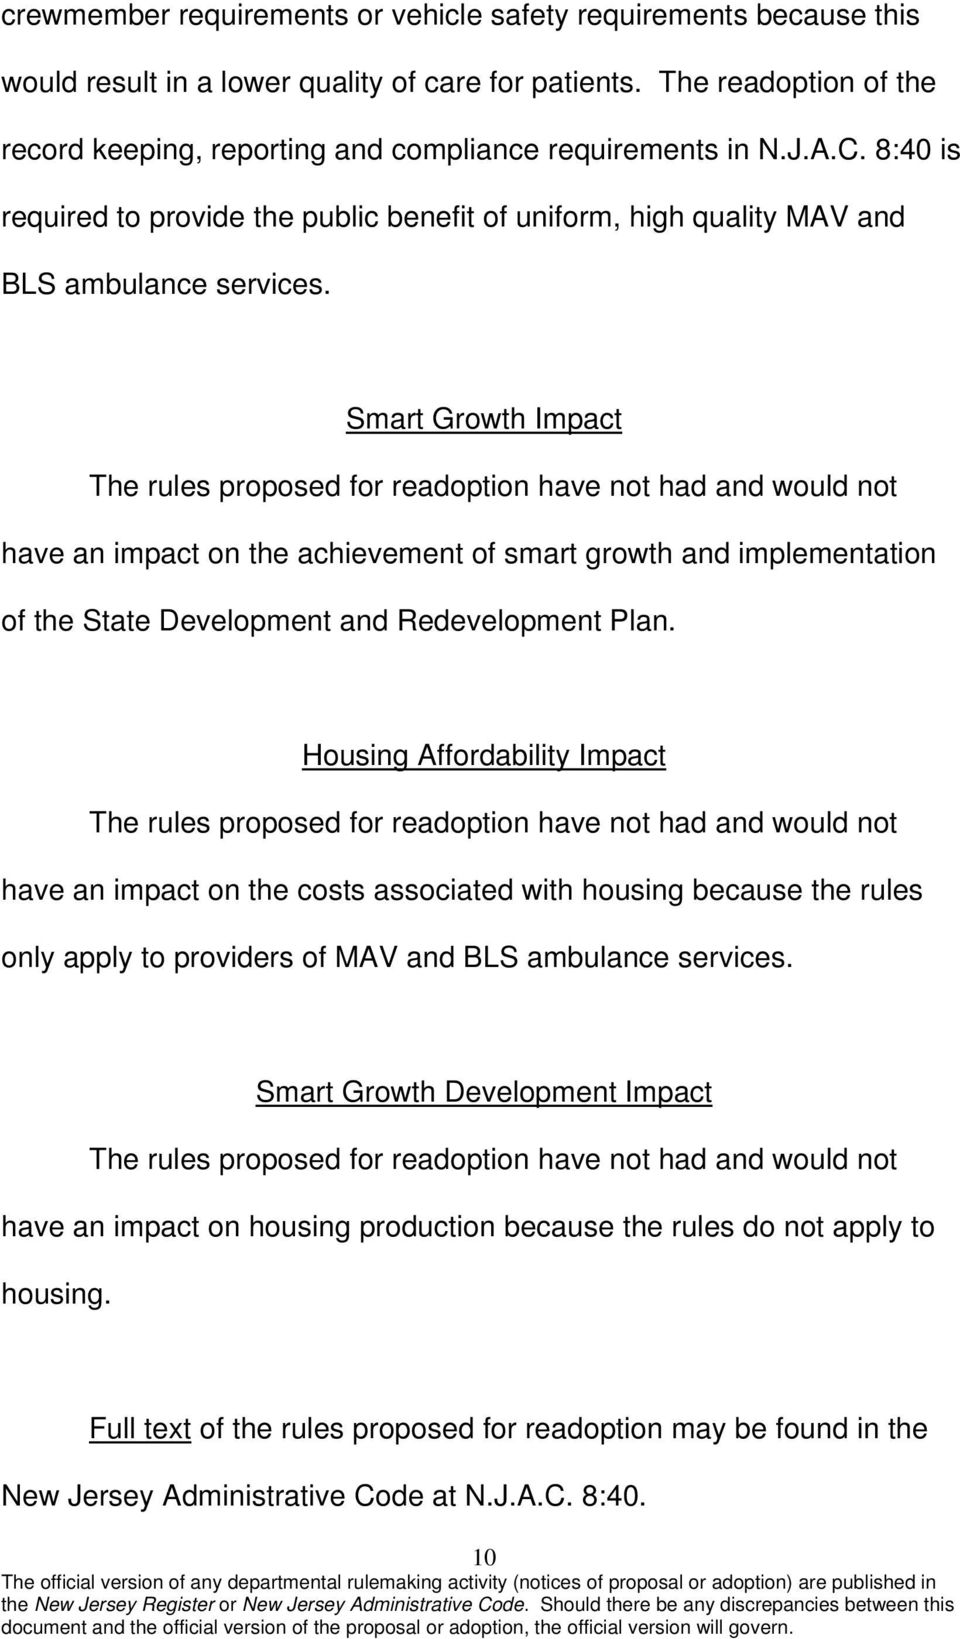 Smart Growth Impact The rules proposed for readoption have not had and would not have an impact on the achievement of smart growth and implementation of the State Development and Redevelopment Plan.